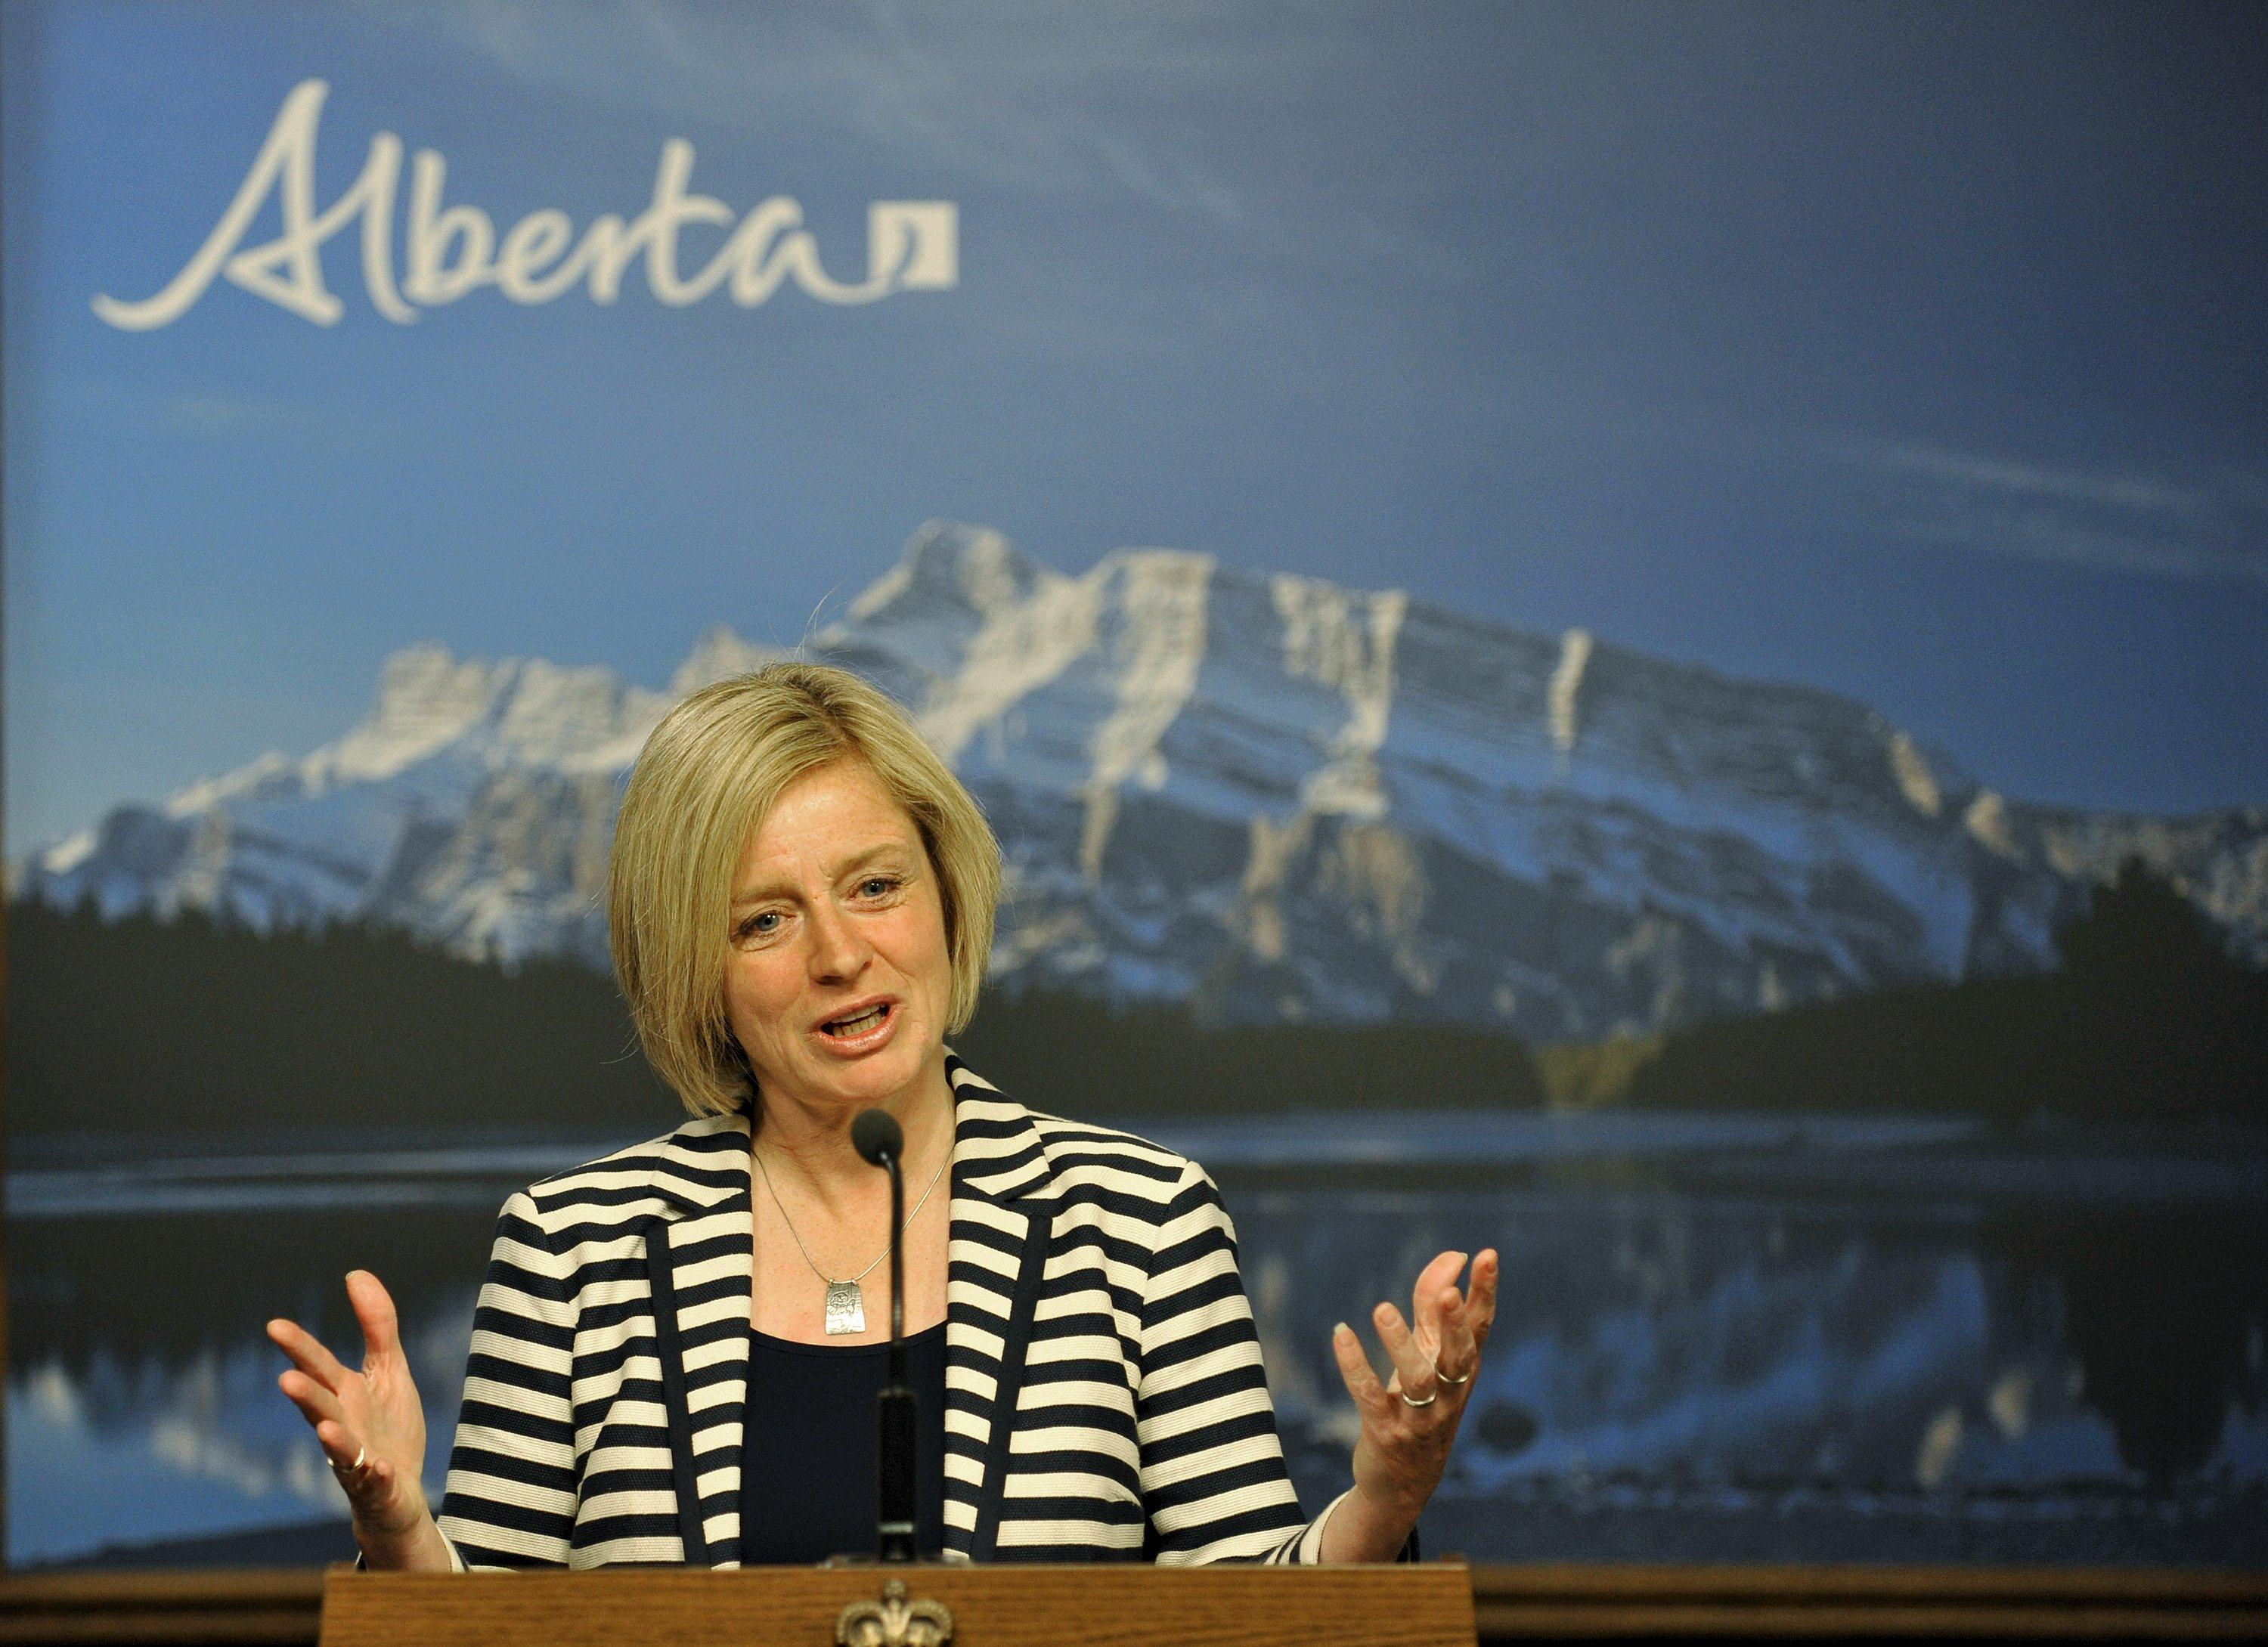 Alberta election key test for Rachel Notley and carbon tax